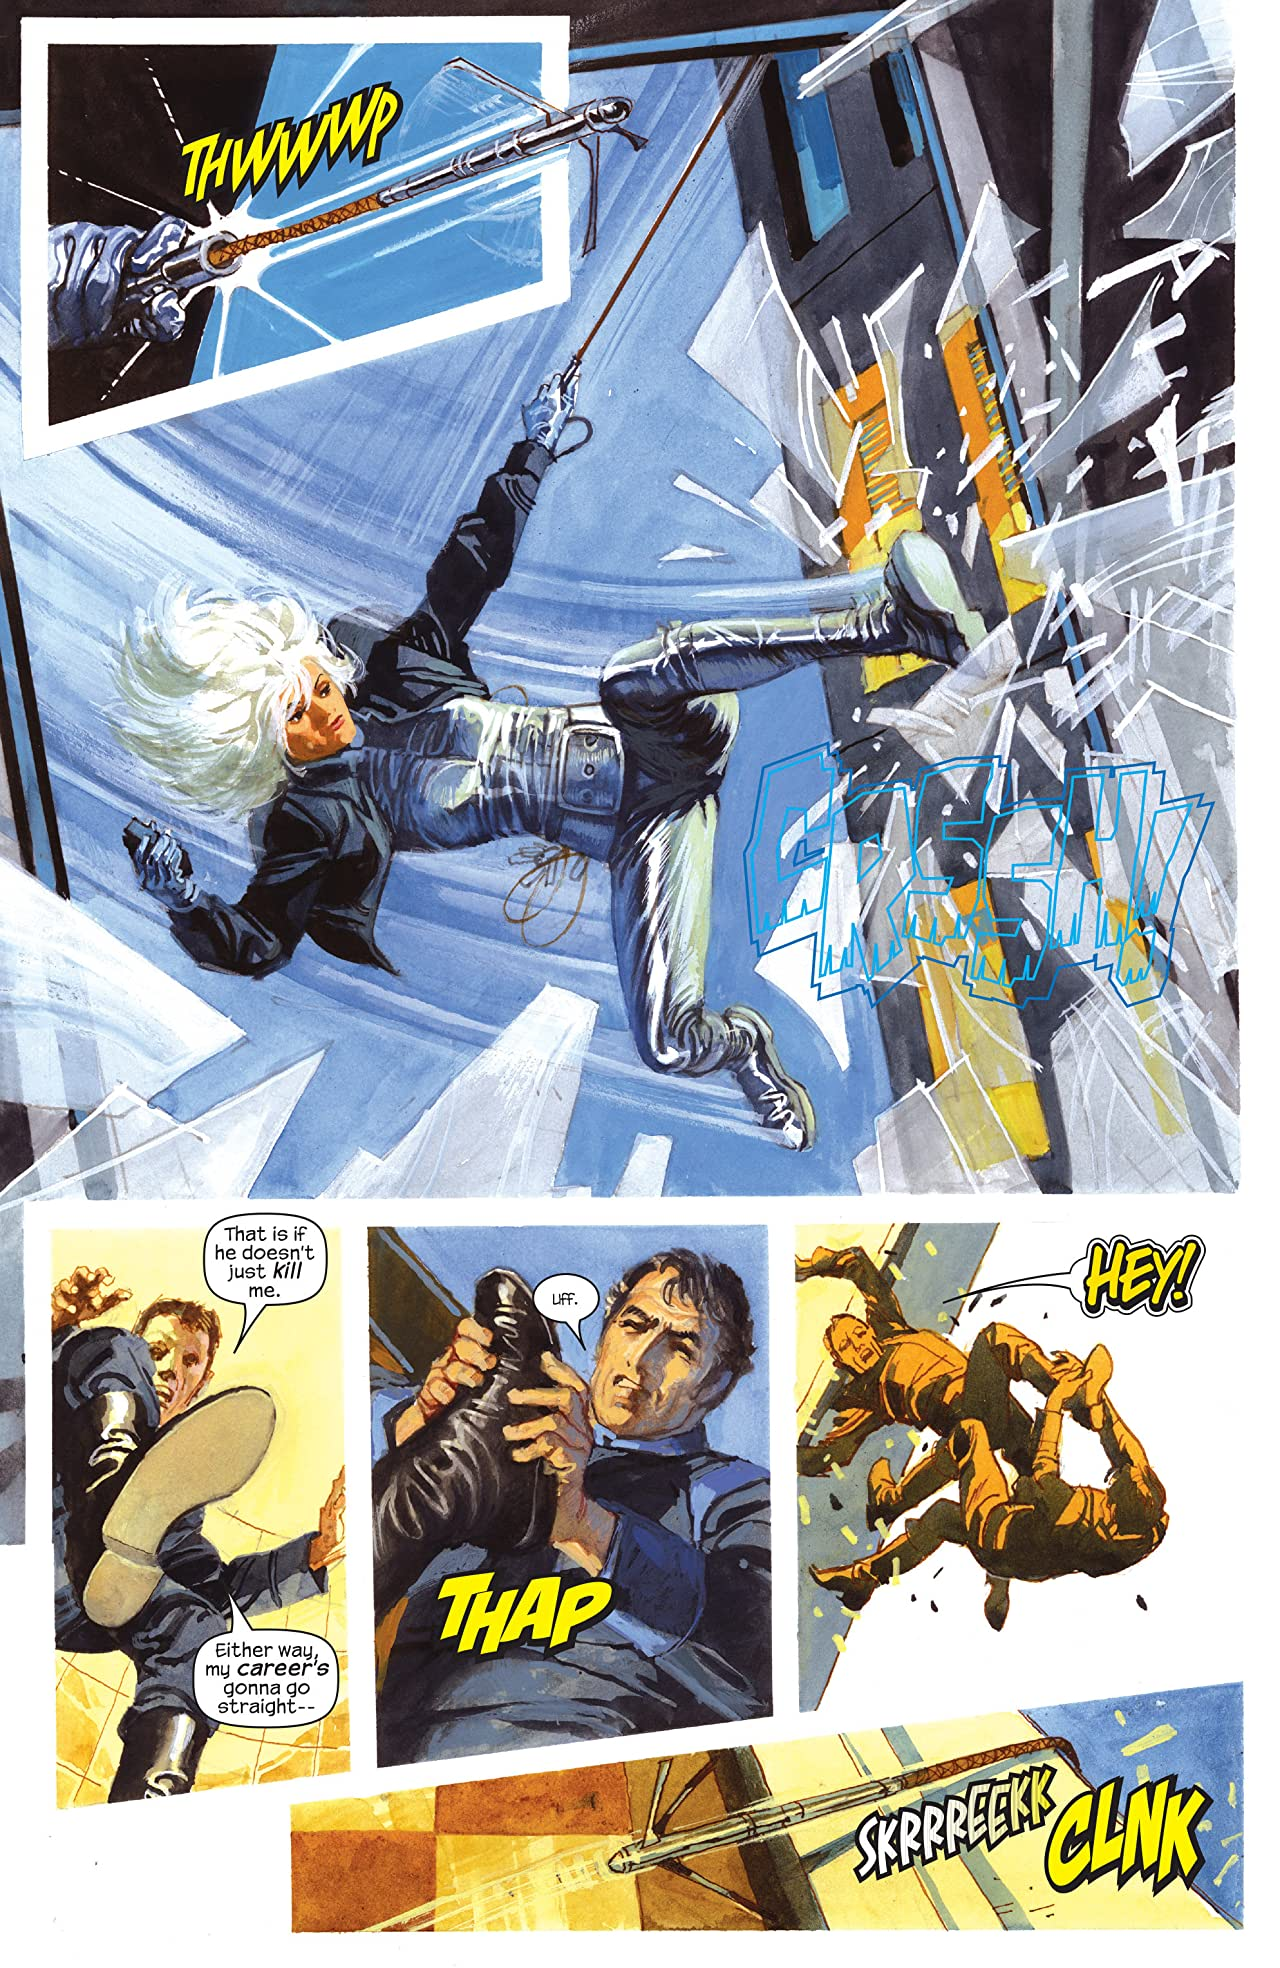 Sable & Fortune (2006) #3 (of 4)